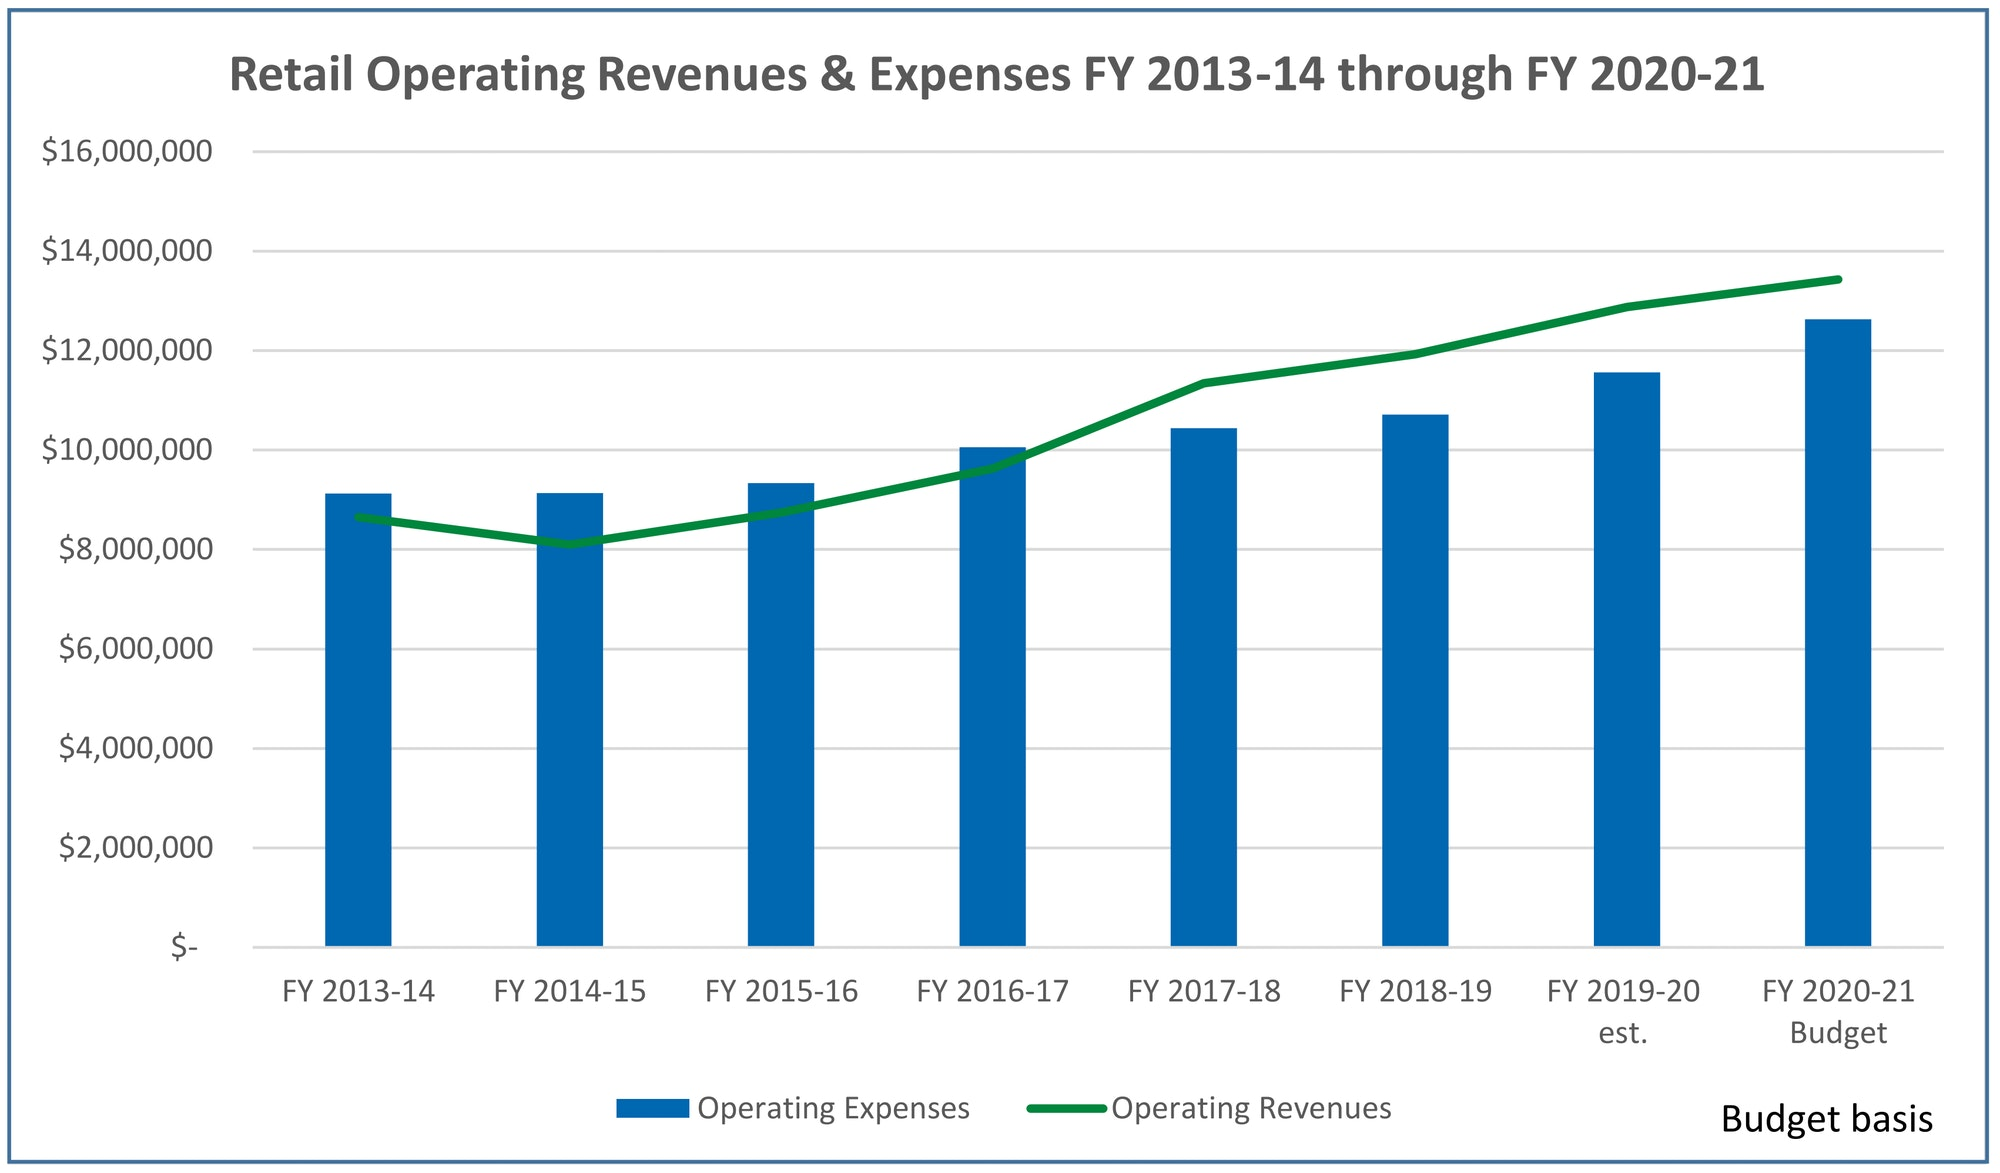 Graph of Retail Operating Revenue and Expenses